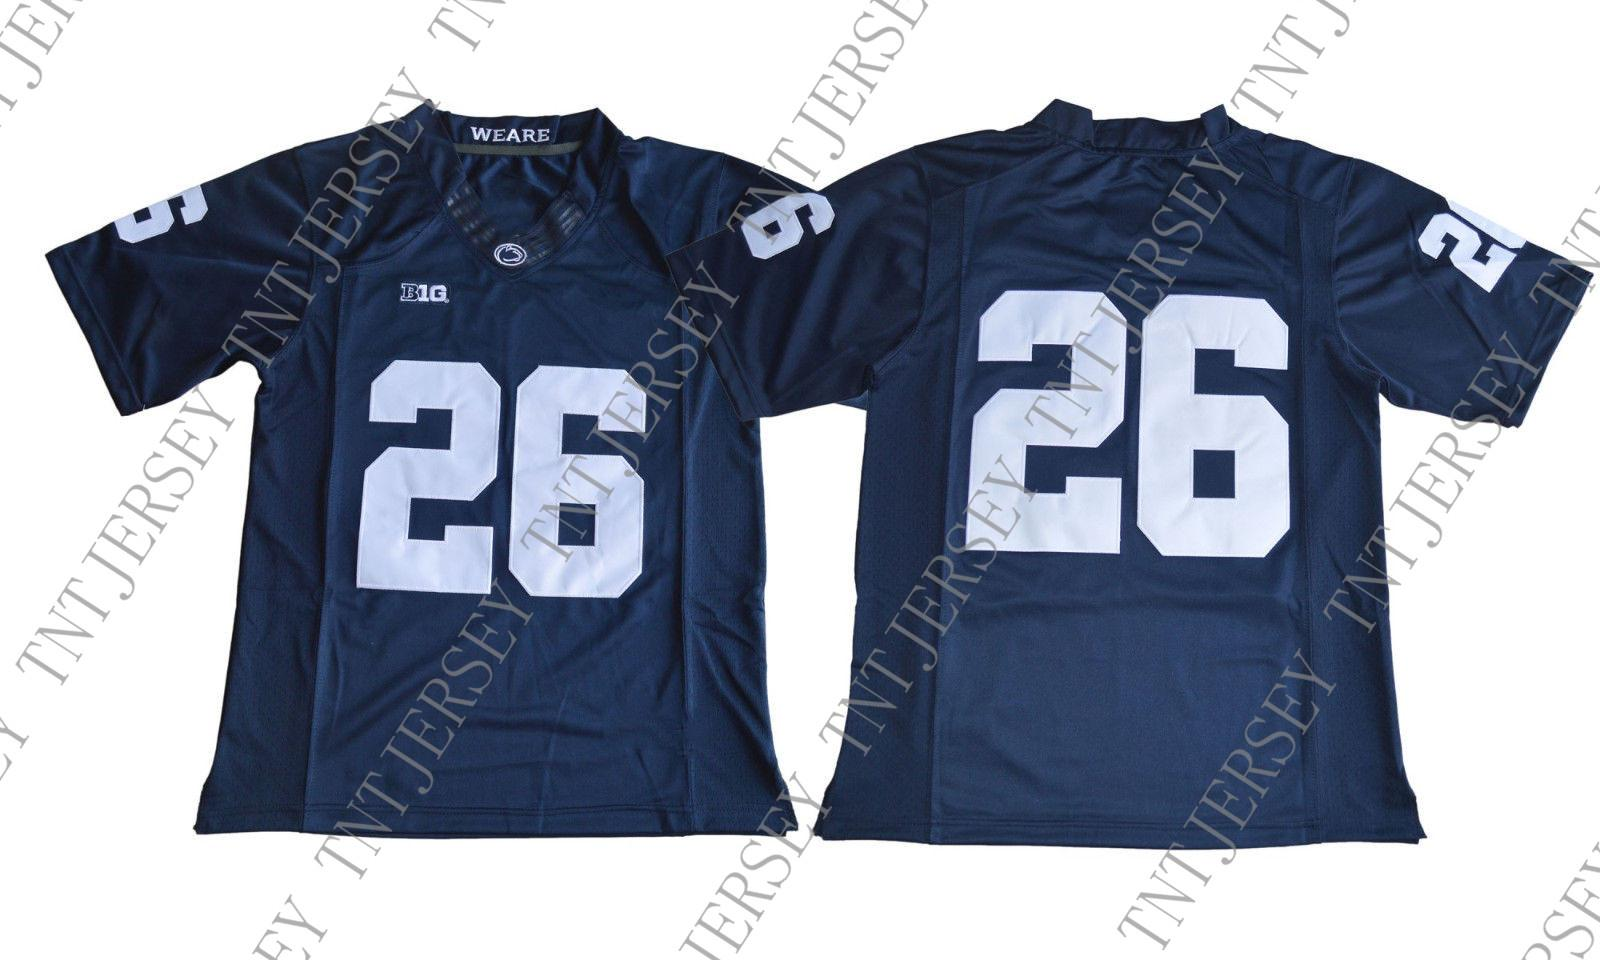 separation shoes 1d331 cbaf4 Cheap custom 2018 Draft No.2 Saquon Barkley 26 College Football Jersey -  Blue Stitched Customize any number name MEN WOMEN YOUTH XS-5XL